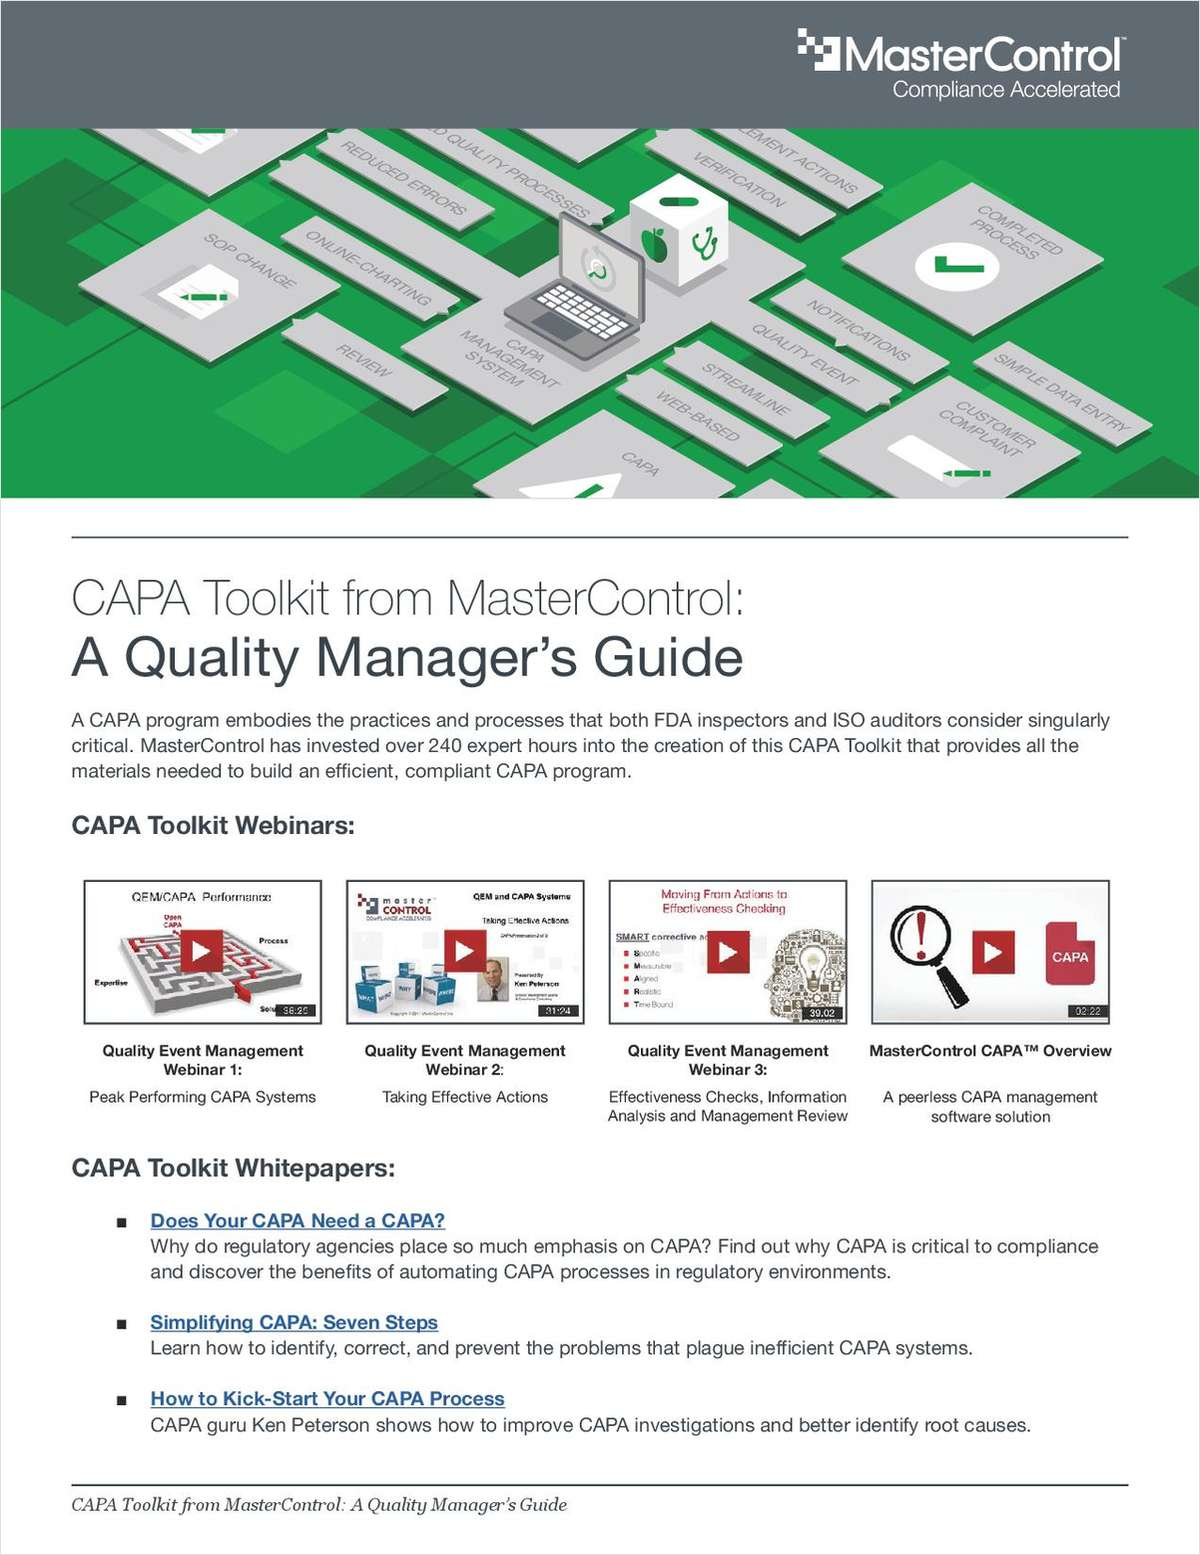 9 Free Resources to Help Device Manufacturers Boost CAPA Management